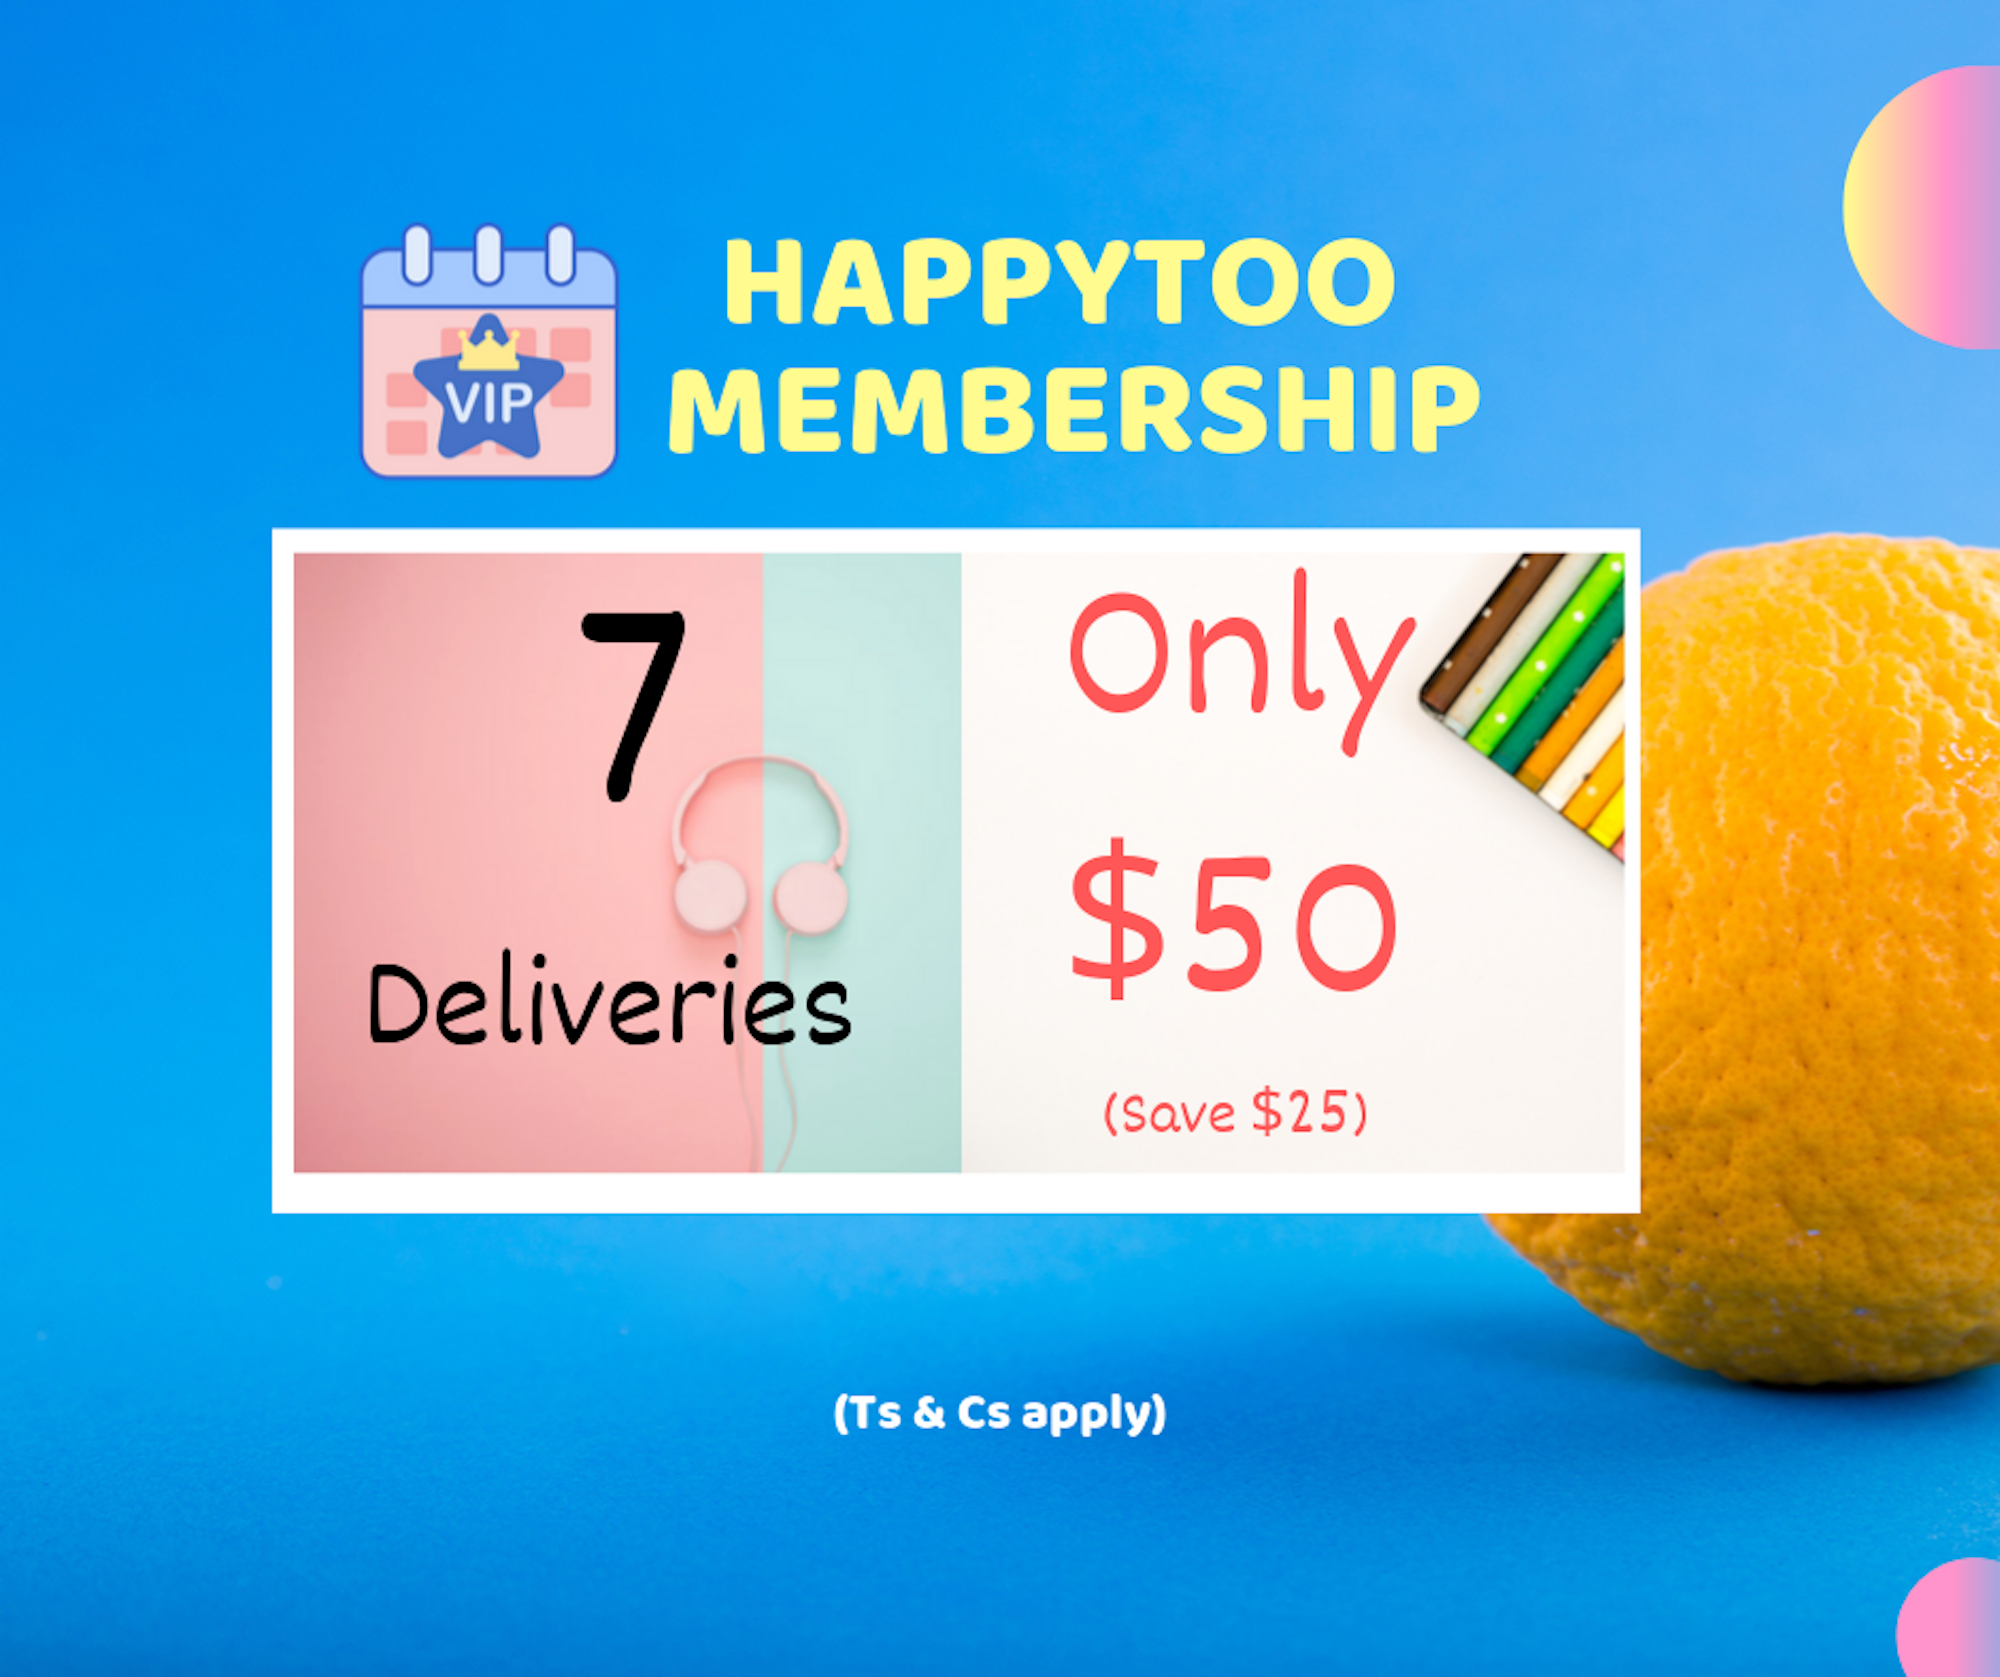 $50 for 7 Deliveries (HappyToo VIP Membership)